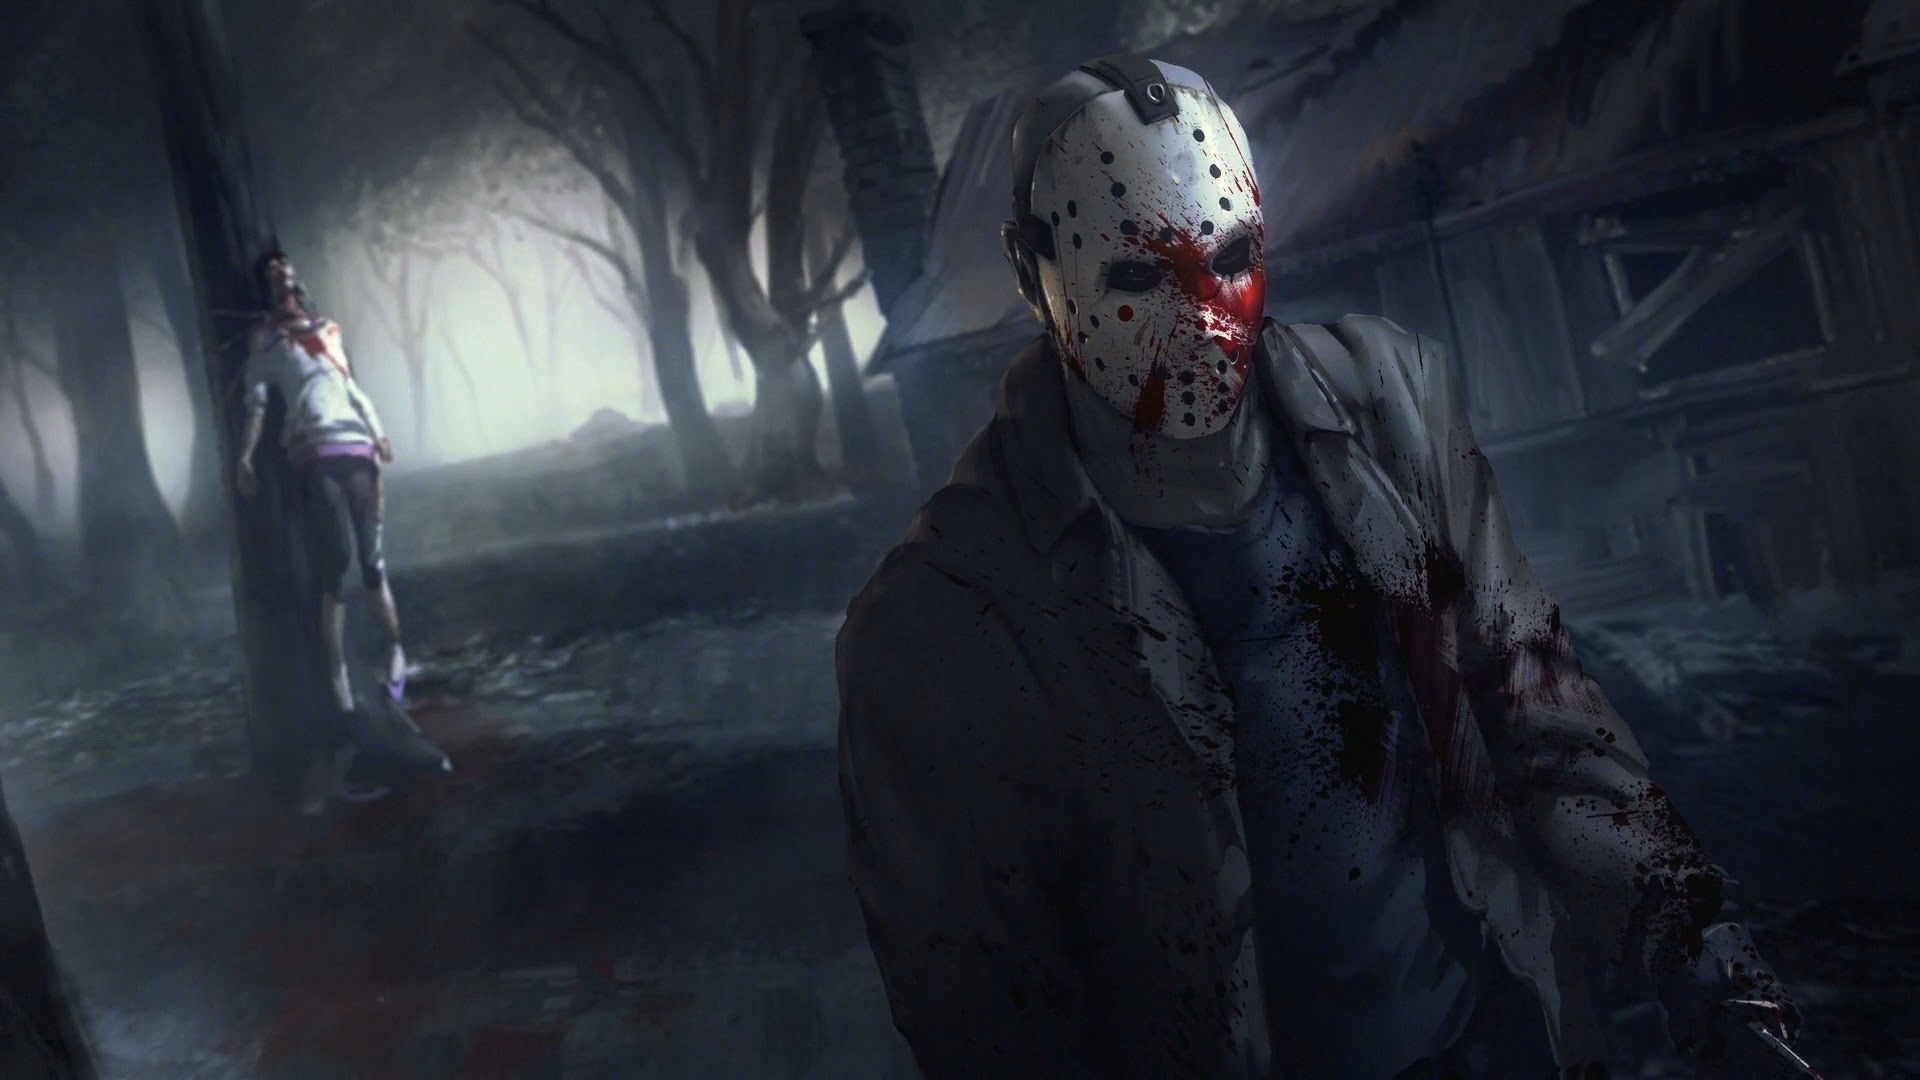 Friday the 13th: The Video Game